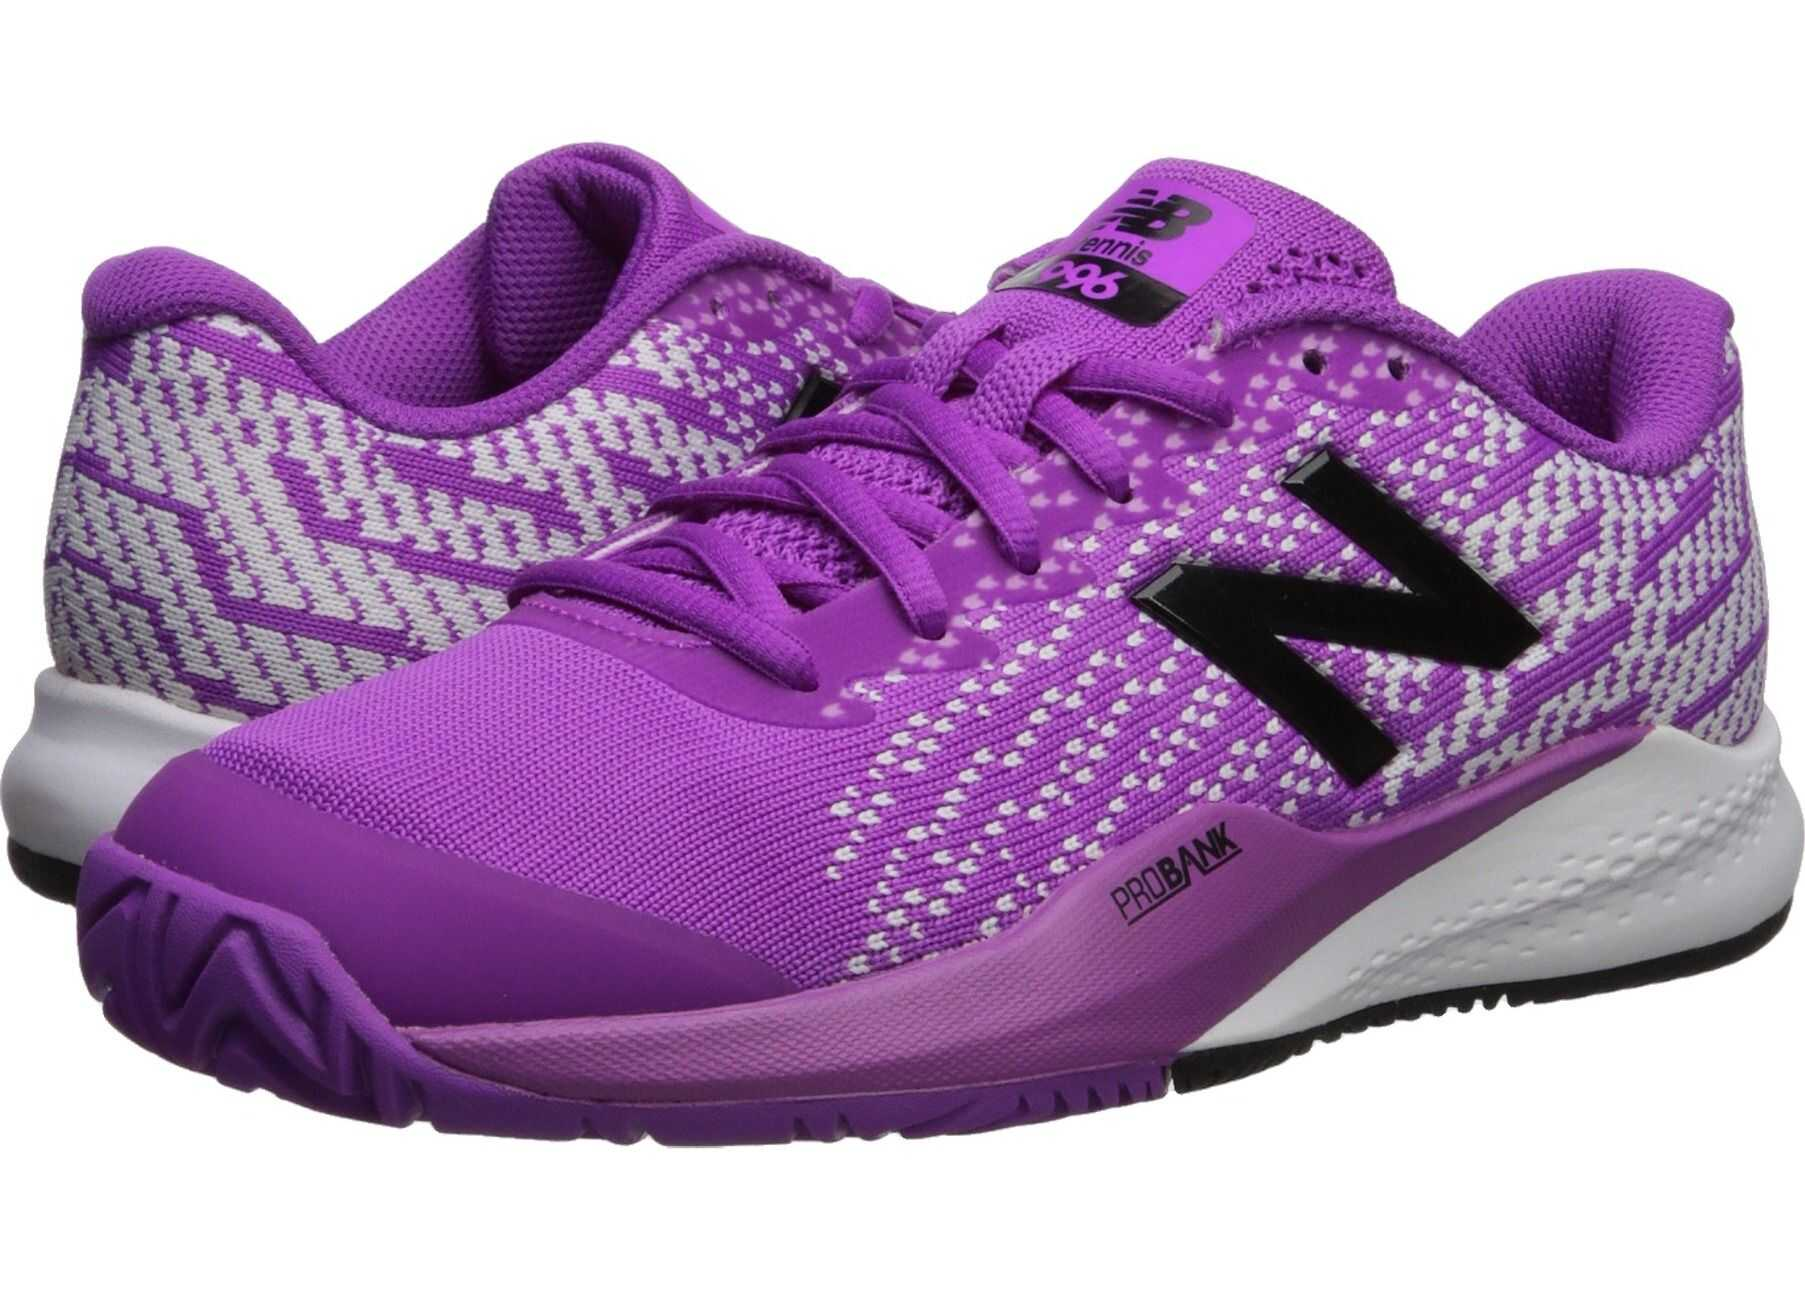 New Balance WCH996v3 Voltage Violet/White